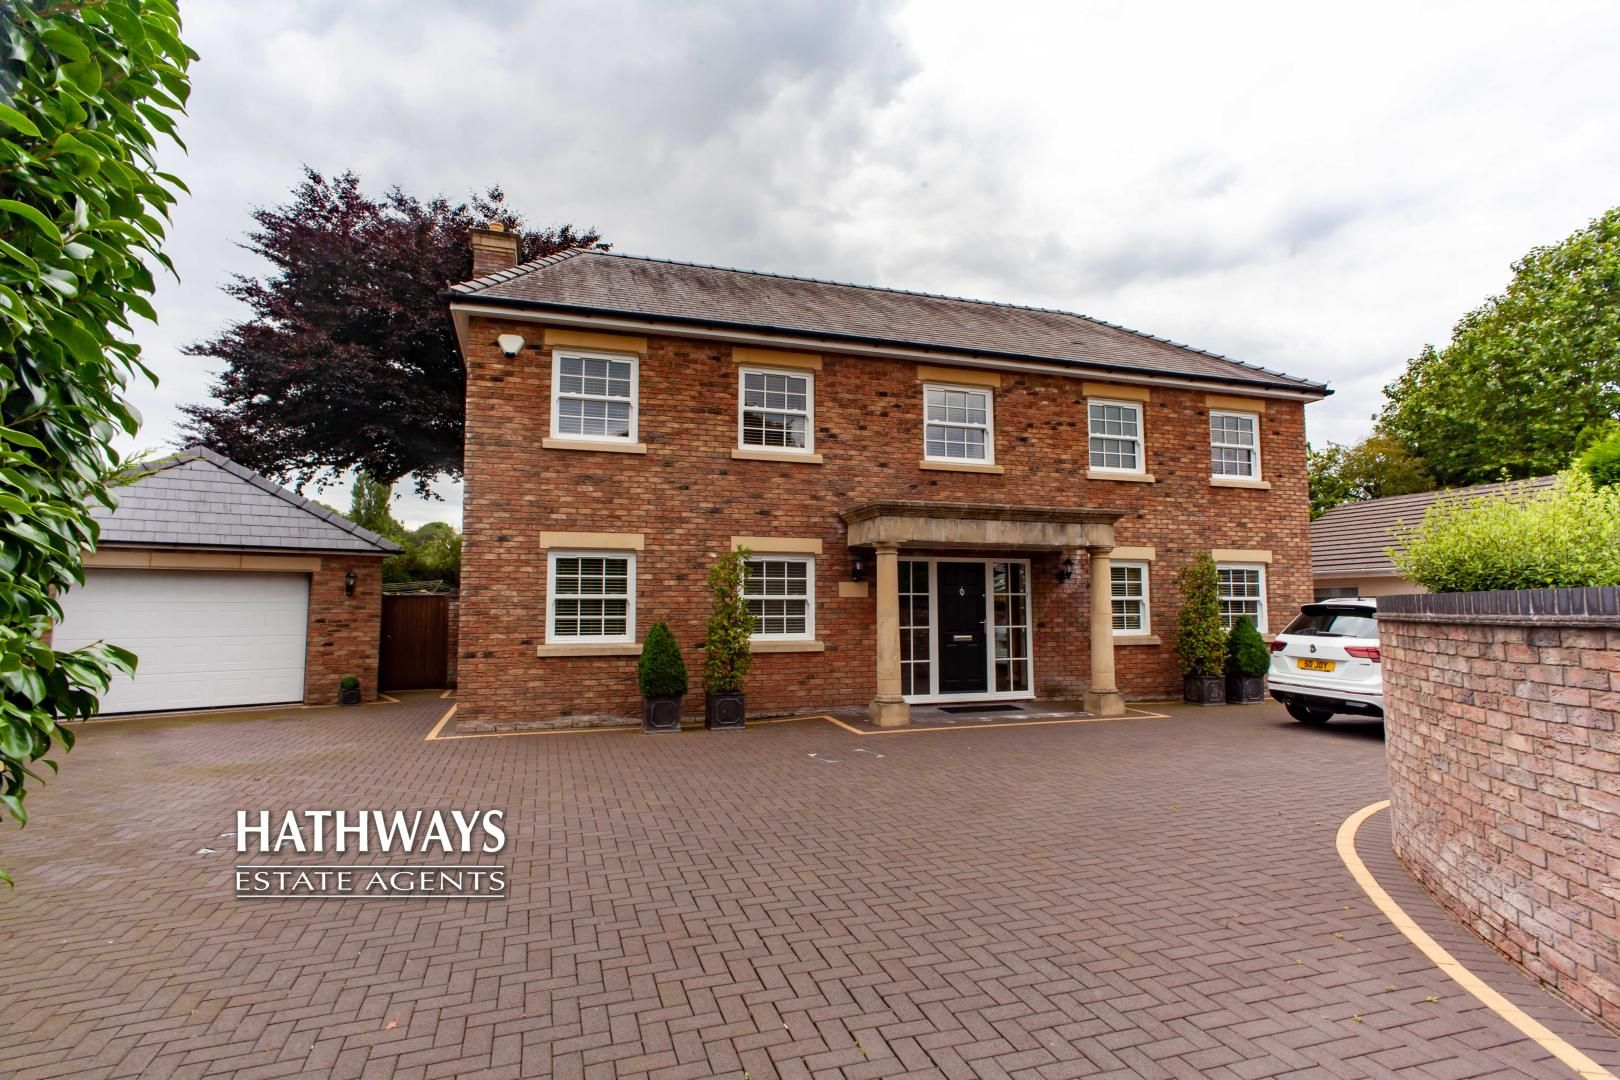 4 bed house for sale in Caerleon Road  - Property Image 1